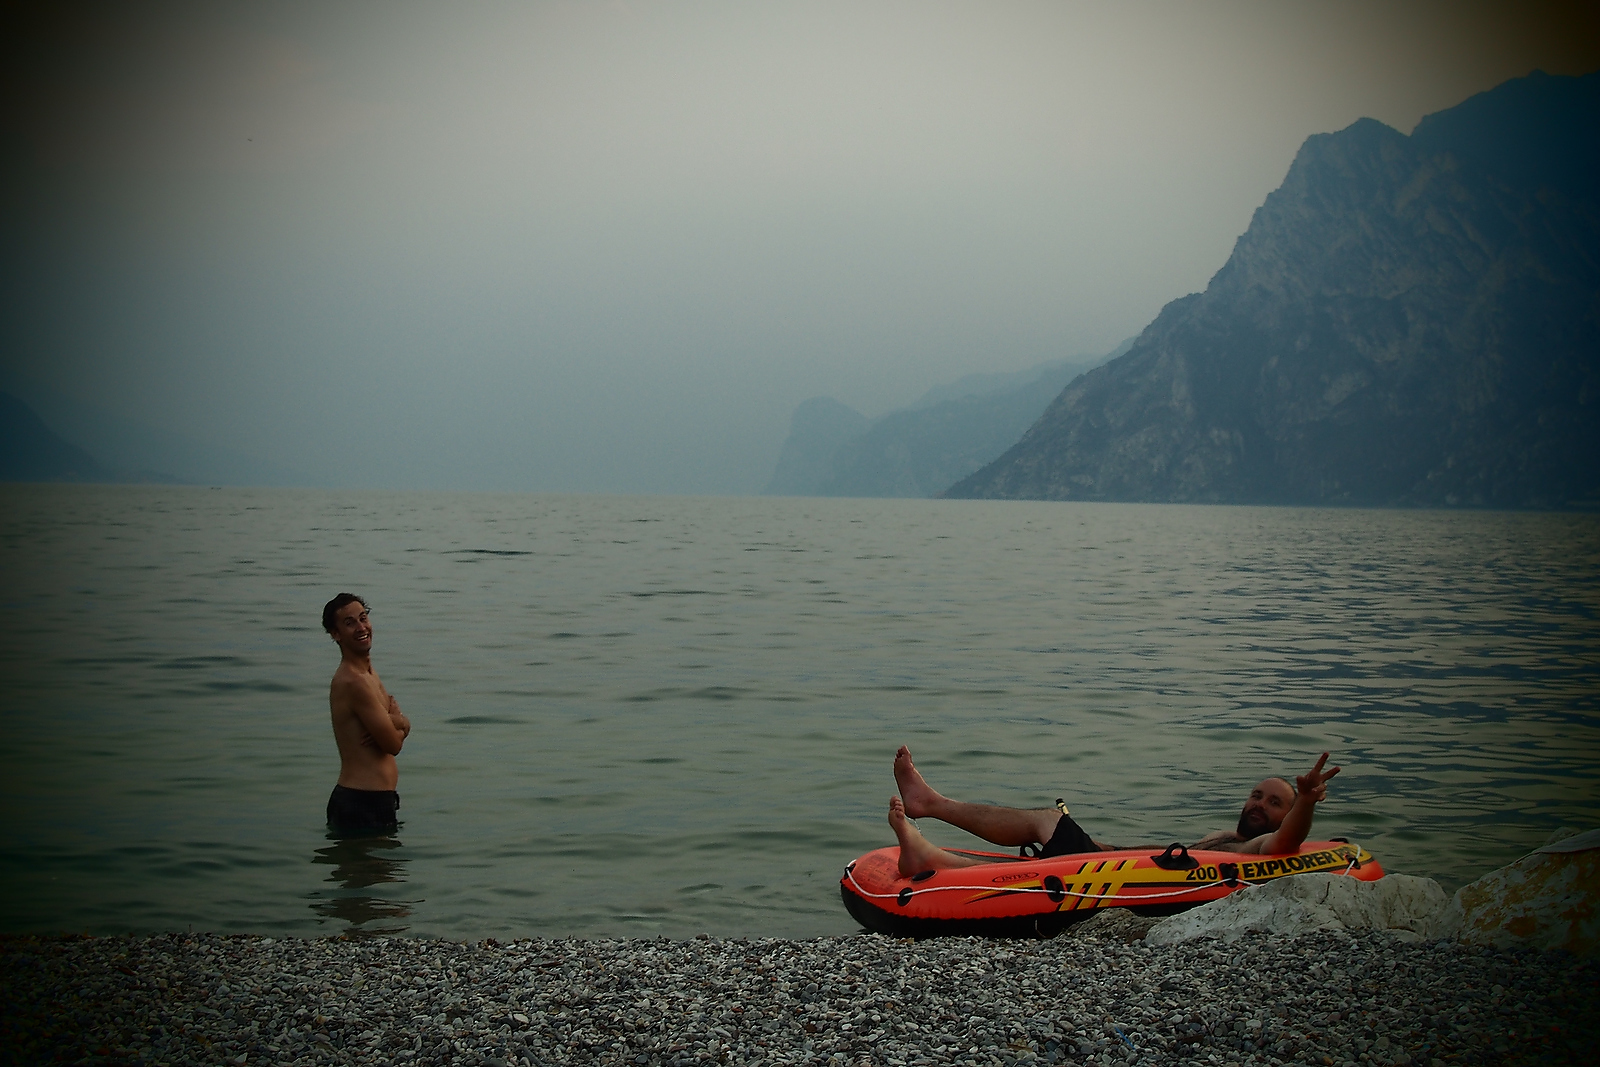 Sven & Andy lounging in the  lake.